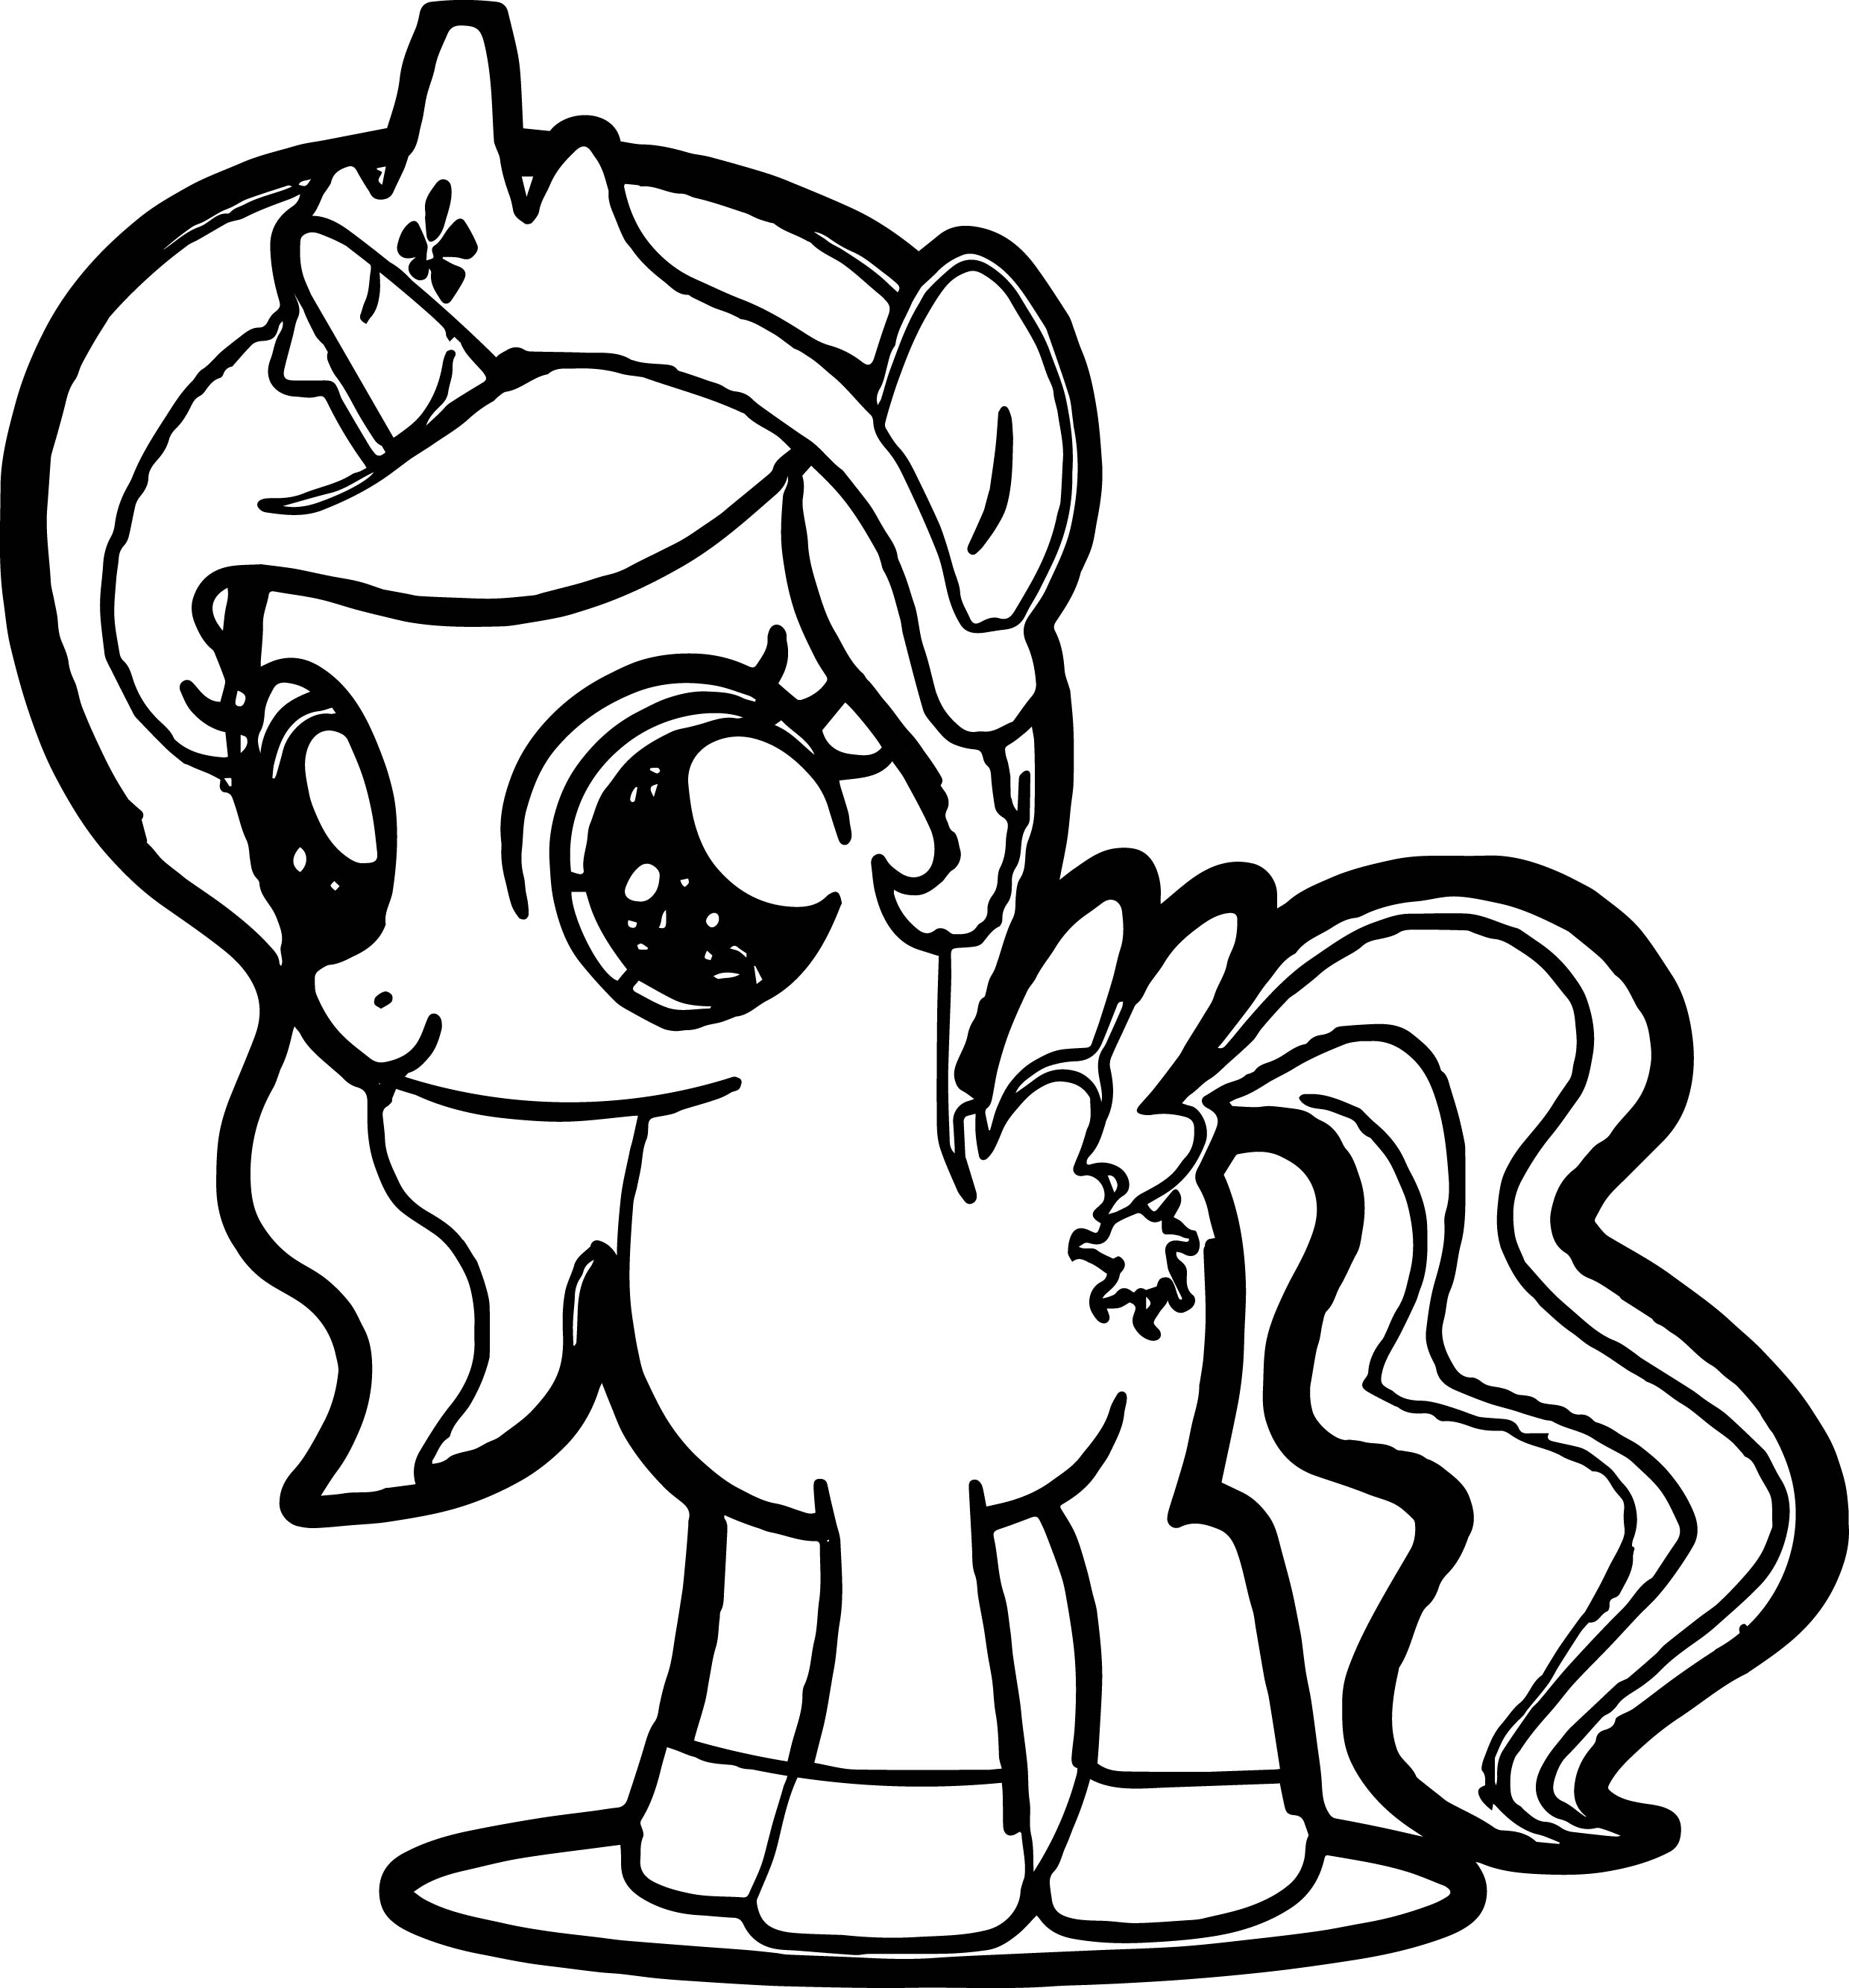 mlp coloring page my little pony coloring pages print and colorcom coloring mlp page